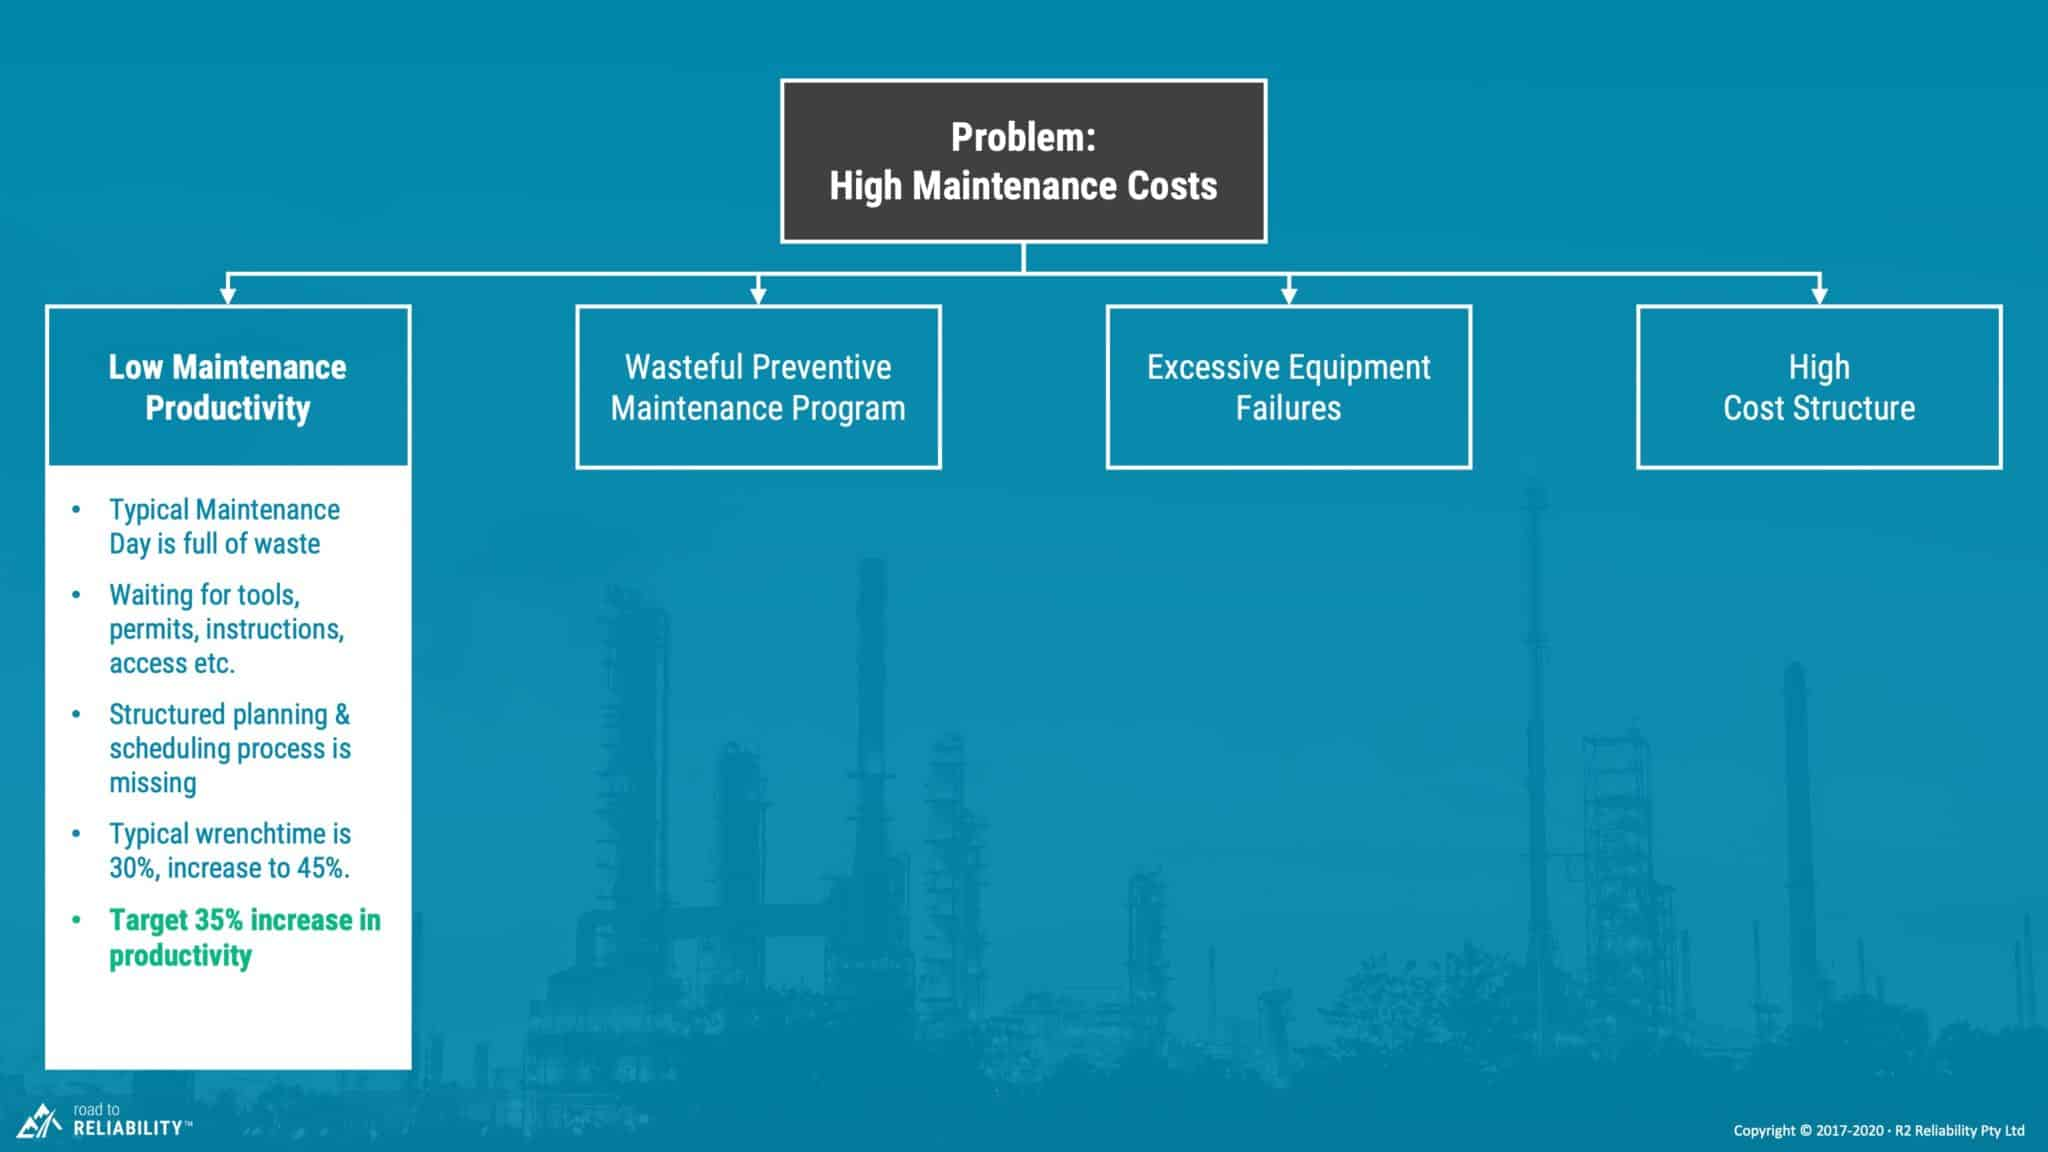 high maintenance costs due to low maintenance productivity